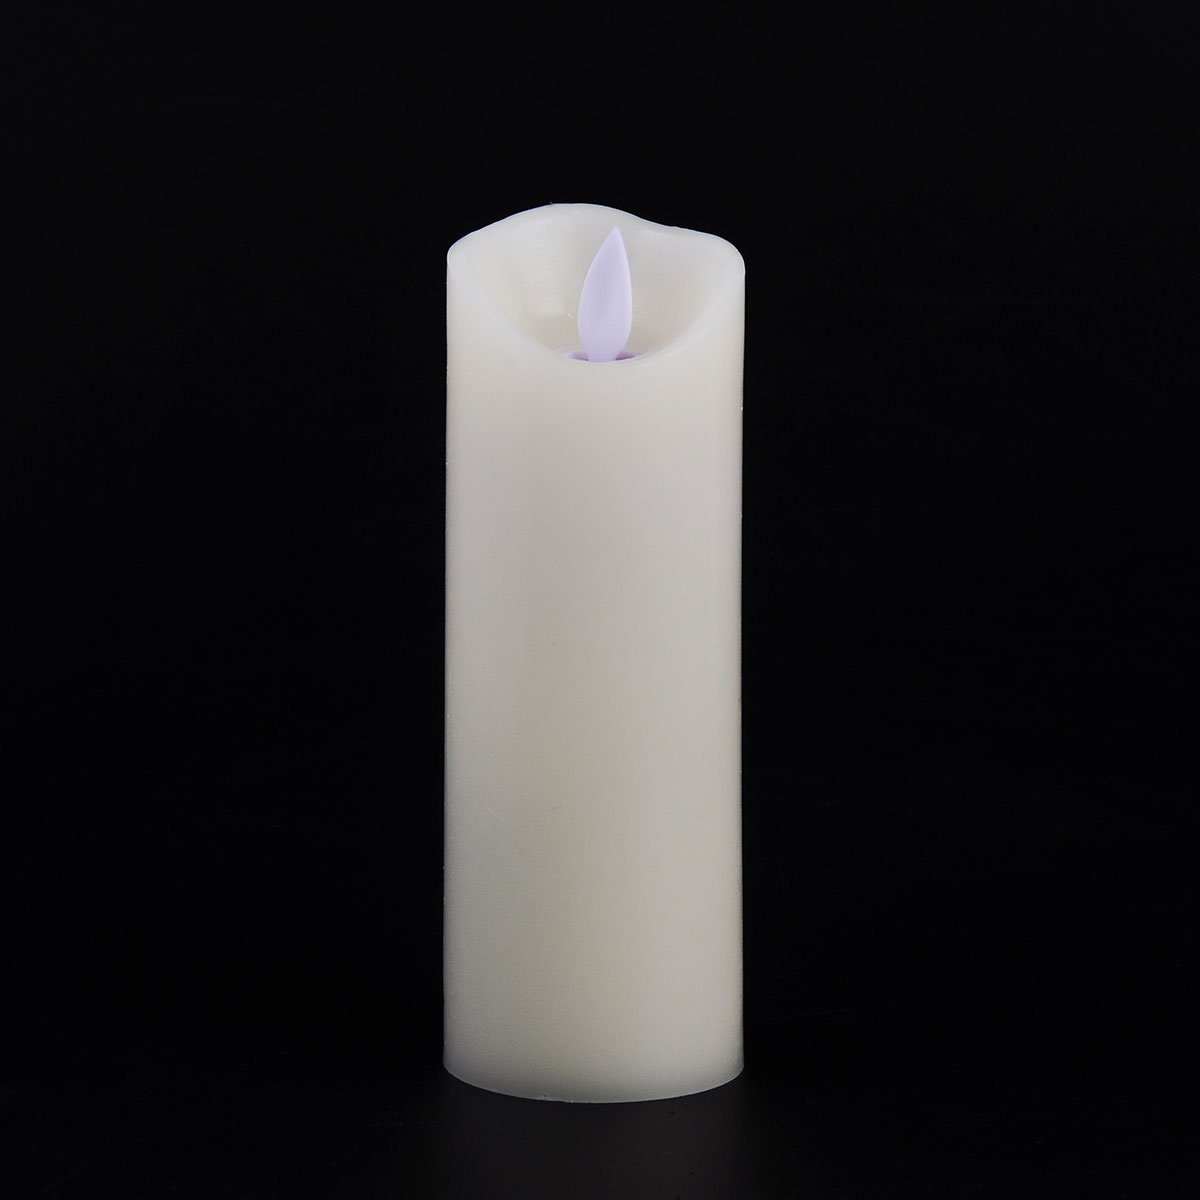 Pandaing Flameless Candles Set of 5 Battery Operated LED Pillar Real Wax Moving Flame Flickering Electric Candle Gift Set with Remote Control Cycling 24 Hours Timer P-02101 D 3 x H 4 4 5 6 7